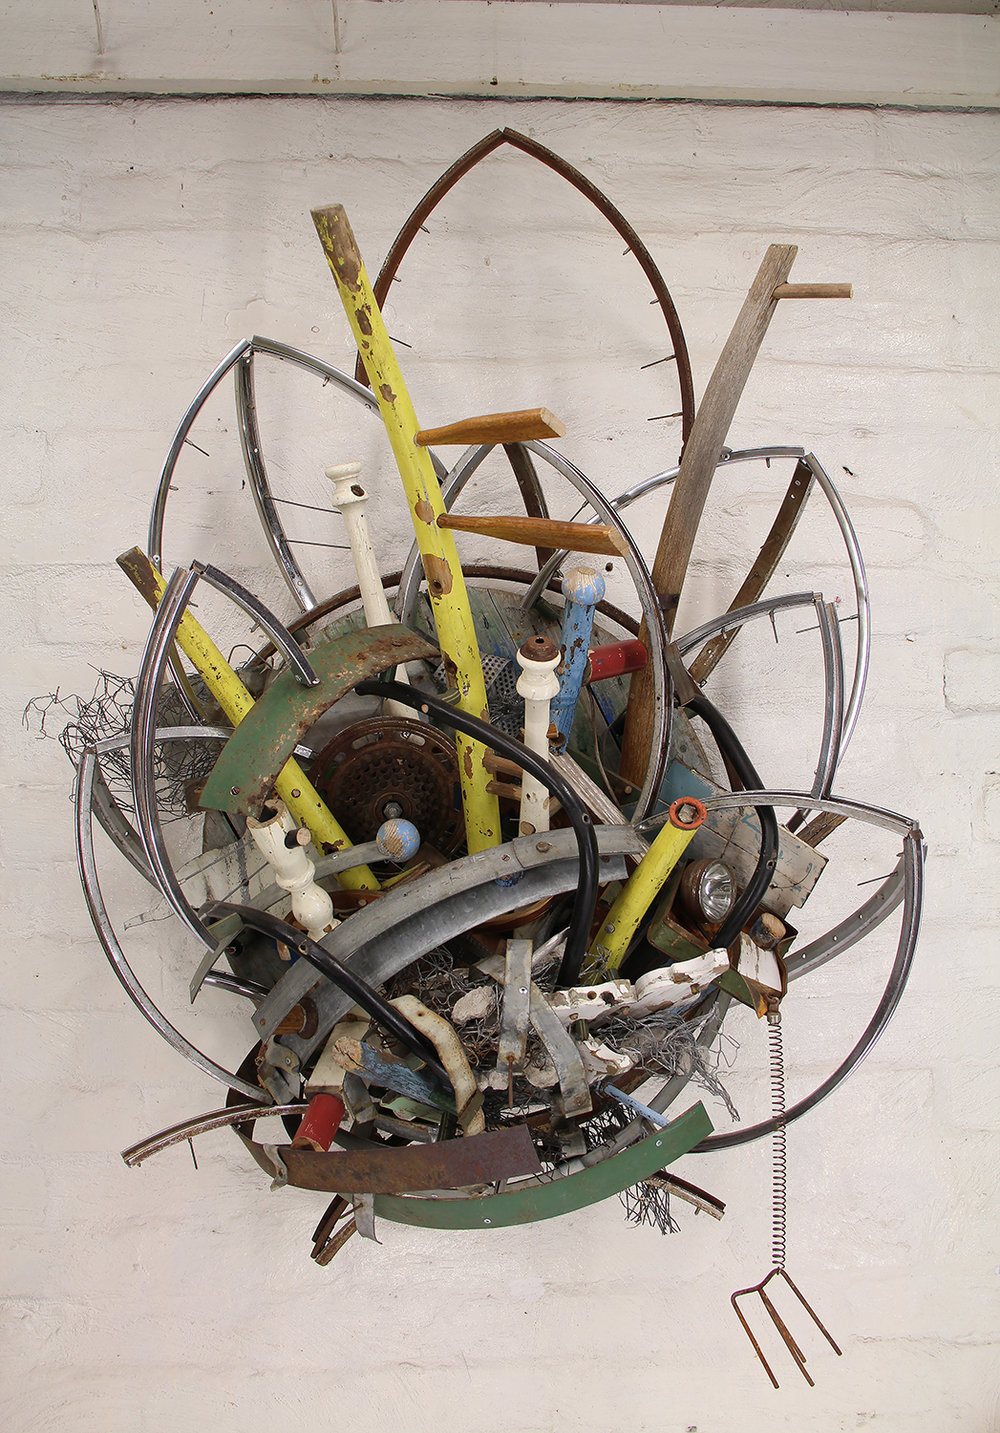 Atomic age organics Inc  | 2016 | discarded metal, timber and plastic objects wire and rubble | 129 x 88 x 49 cm